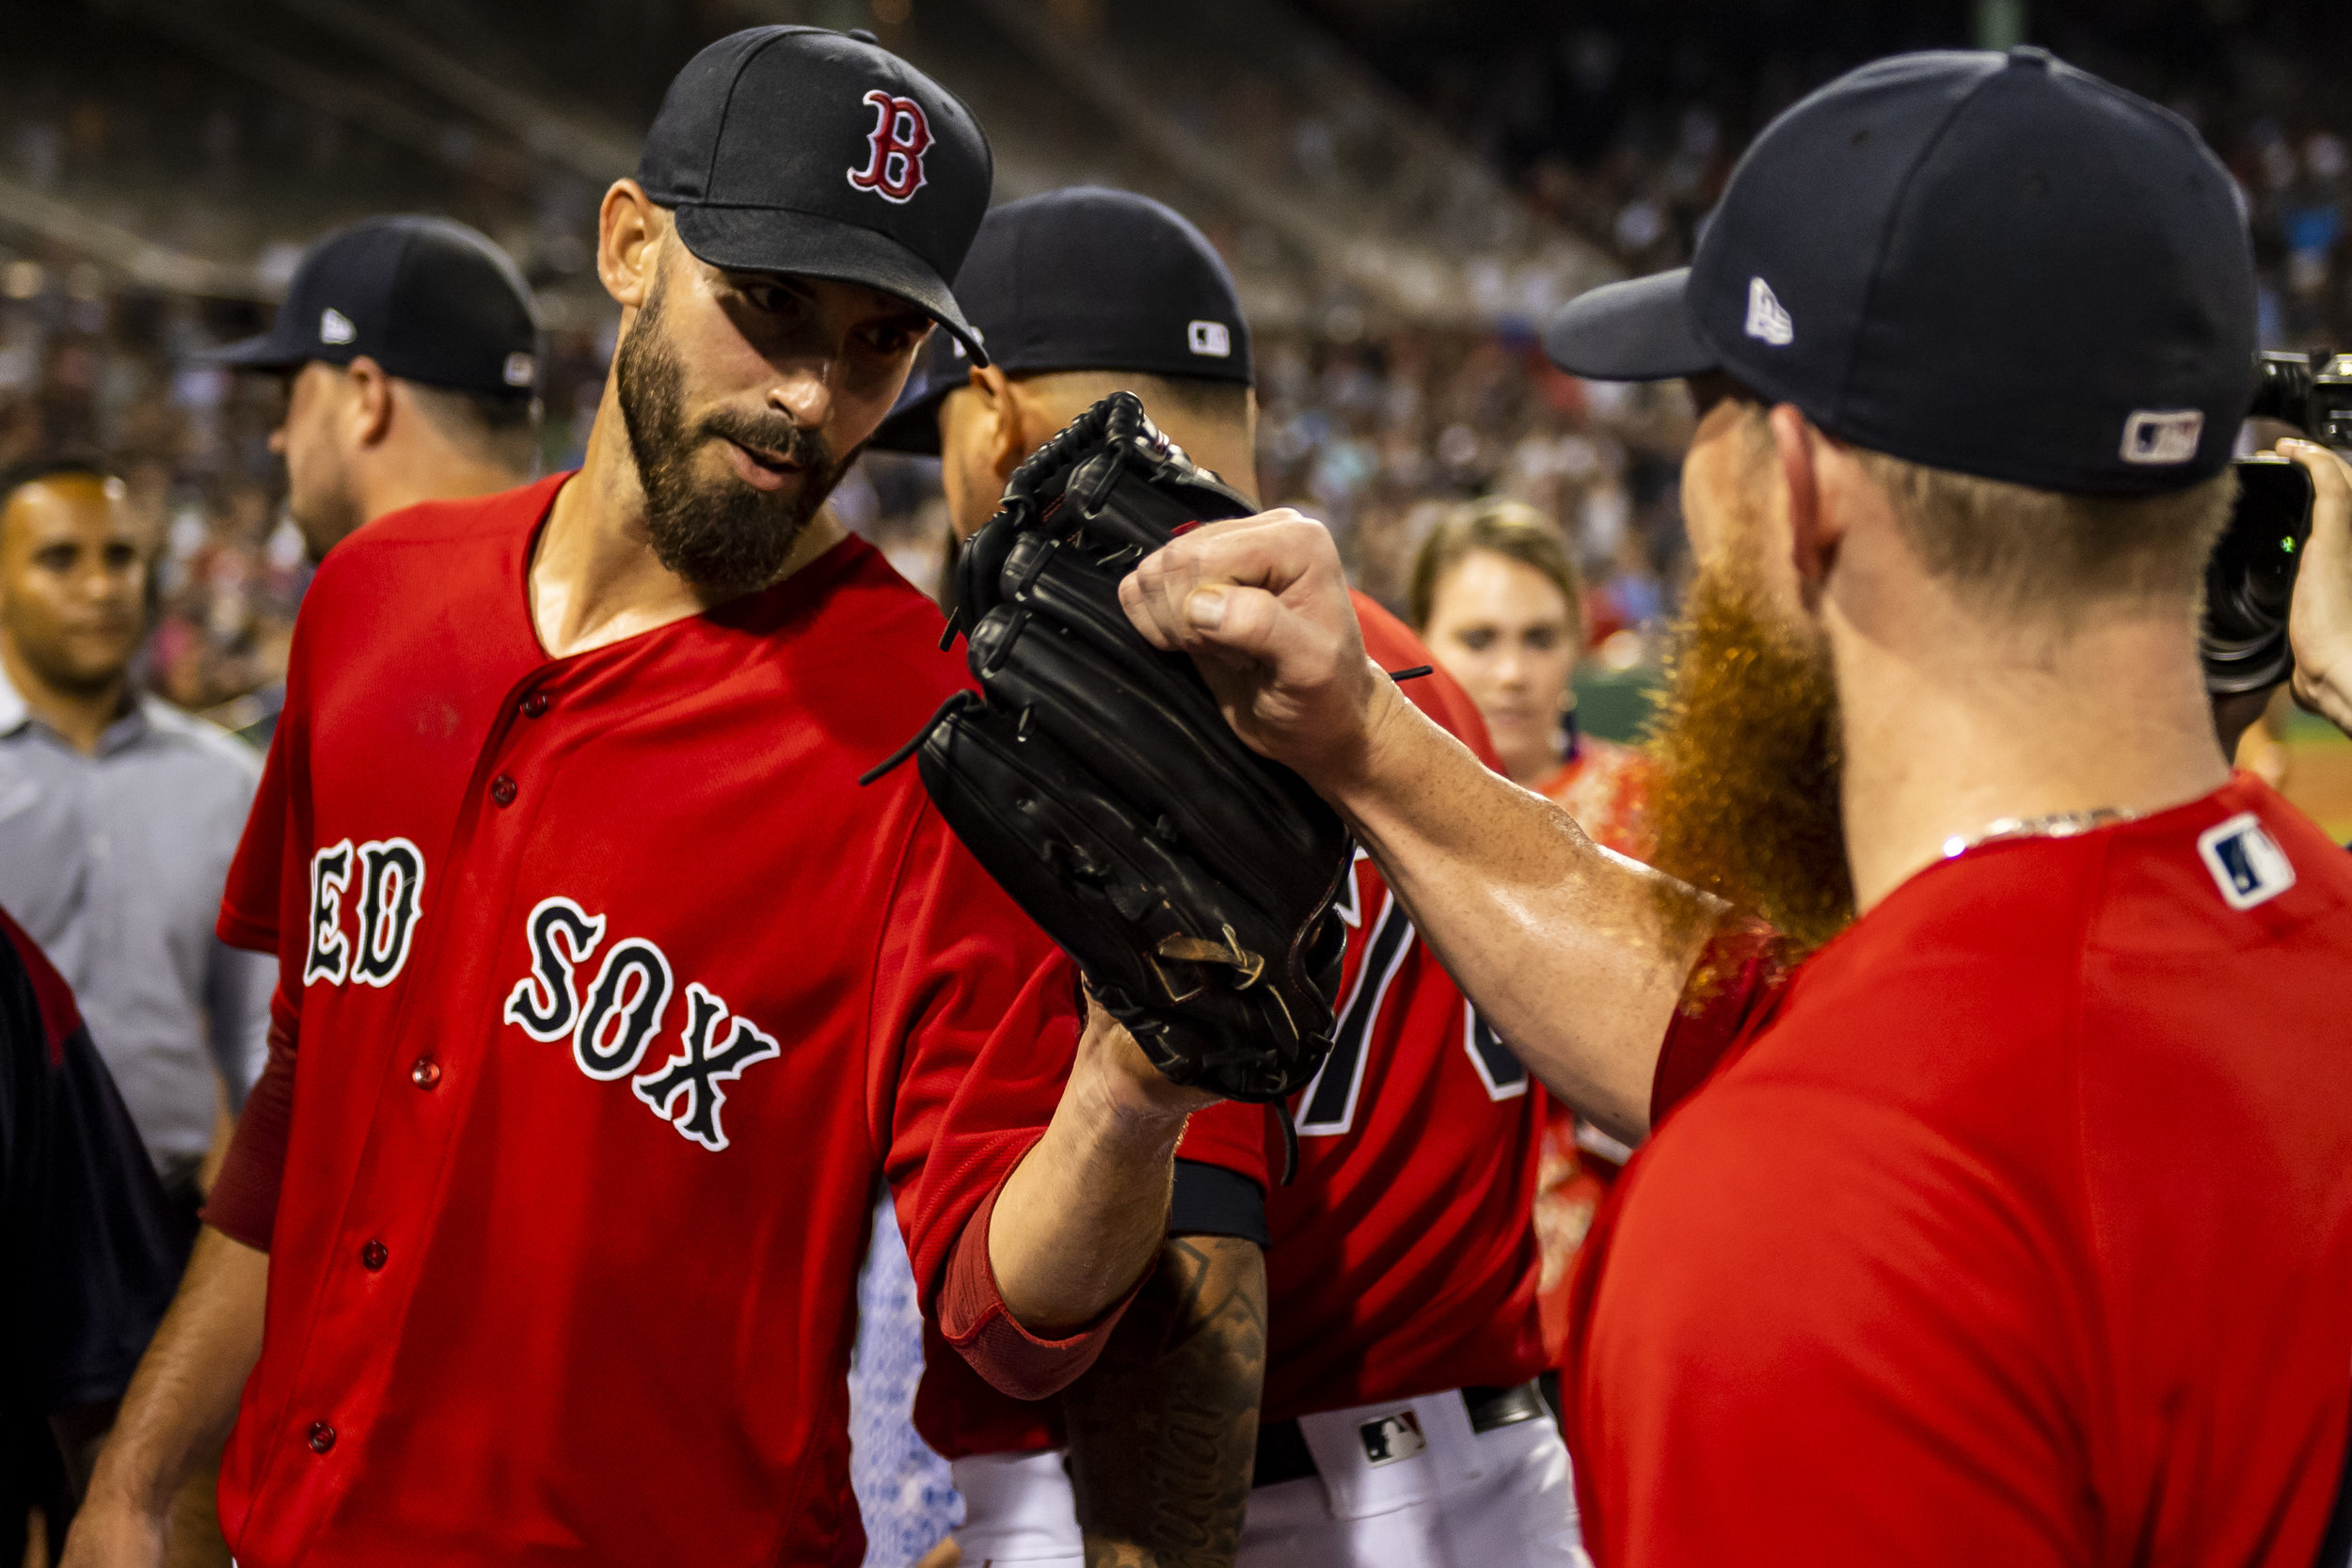 August 3, 2018, Boston, MA: Boston Red Sox pitcher Rick Porcello celebrates pitching a one hit complete game with Boston Red Sox pitcher Craig Kimbrel as the Boston Red Sox defeat the New York Yankees at Fenway Park in Boston, Massachusetts on Friday, August 3, 2018. (Photo by Matthew Thomas/Boston Red Sox)